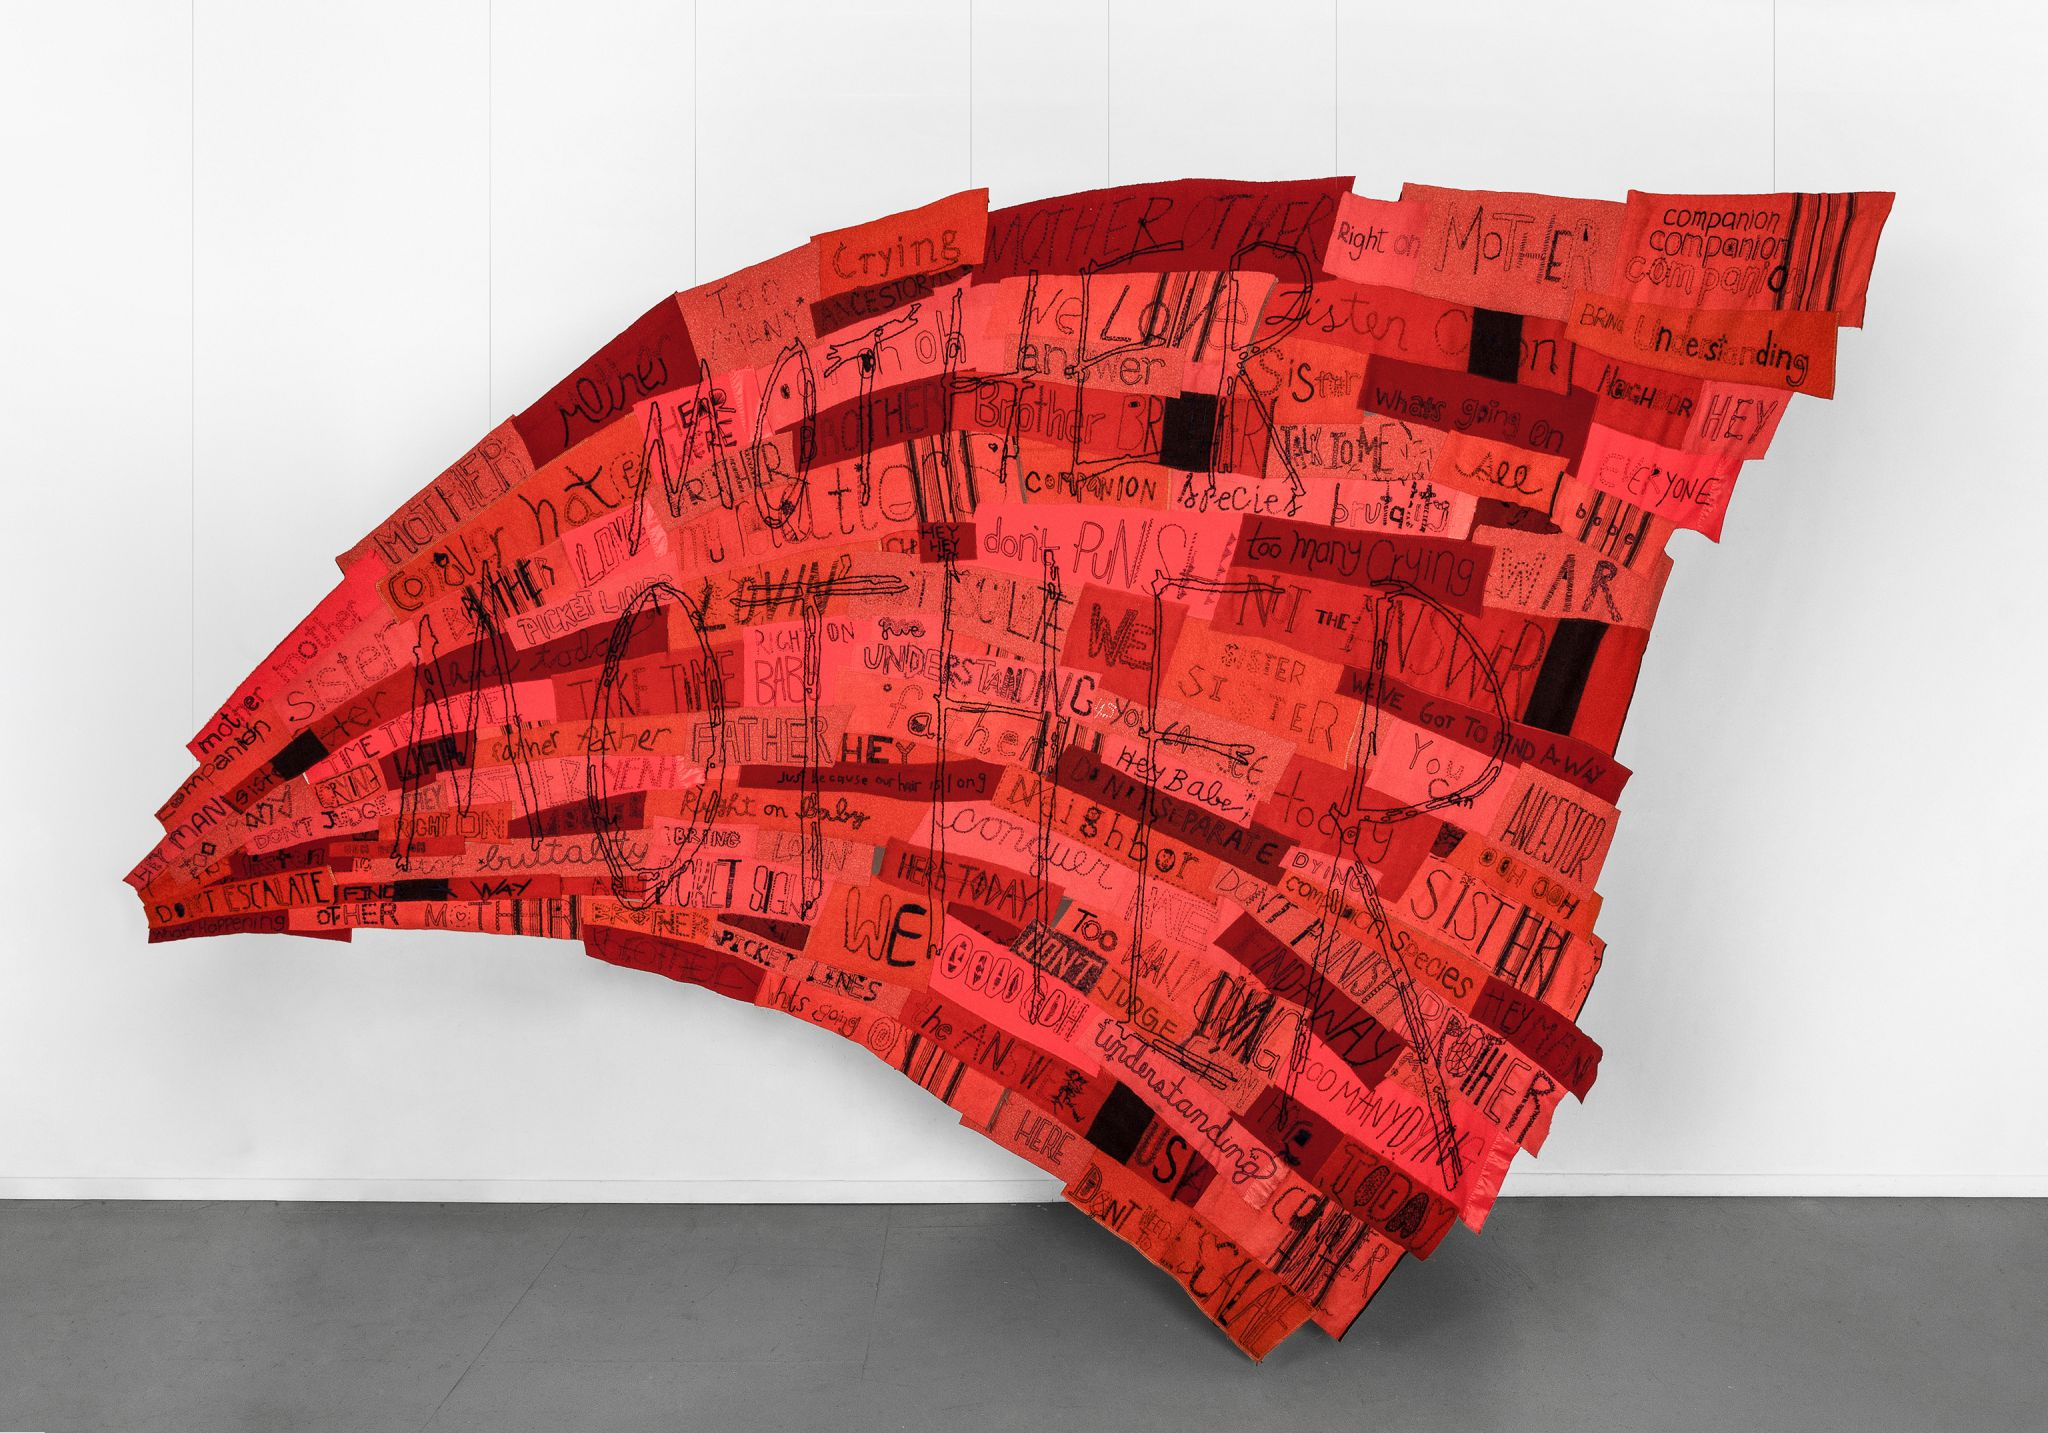 2019 Reclaimed wool blankets, embroidery floss, thread 136 x 198.5 inches (345.4 x 504.2 cm) - Marc Straus Gallery